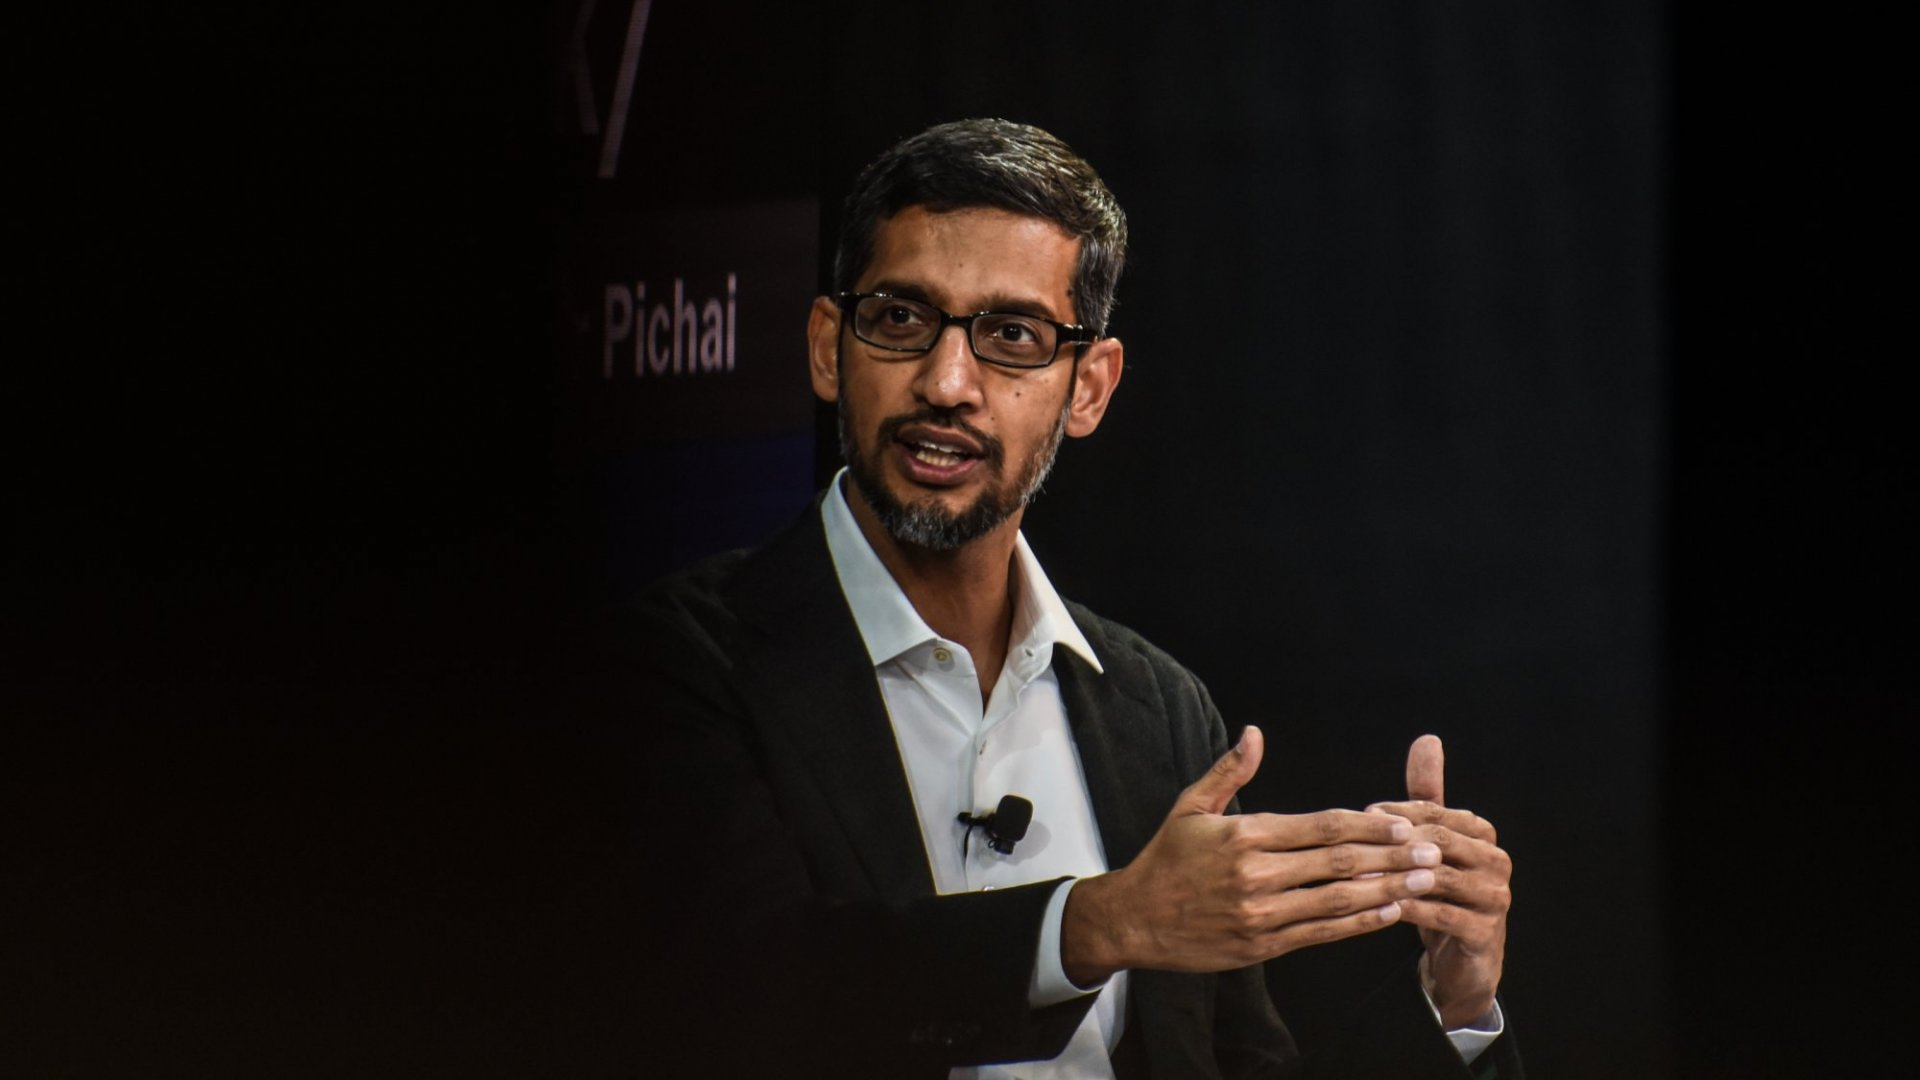 Google Just Ended One of Its Longest-Standing Traditions and Forever Changed How It Handles All-Company Meetings